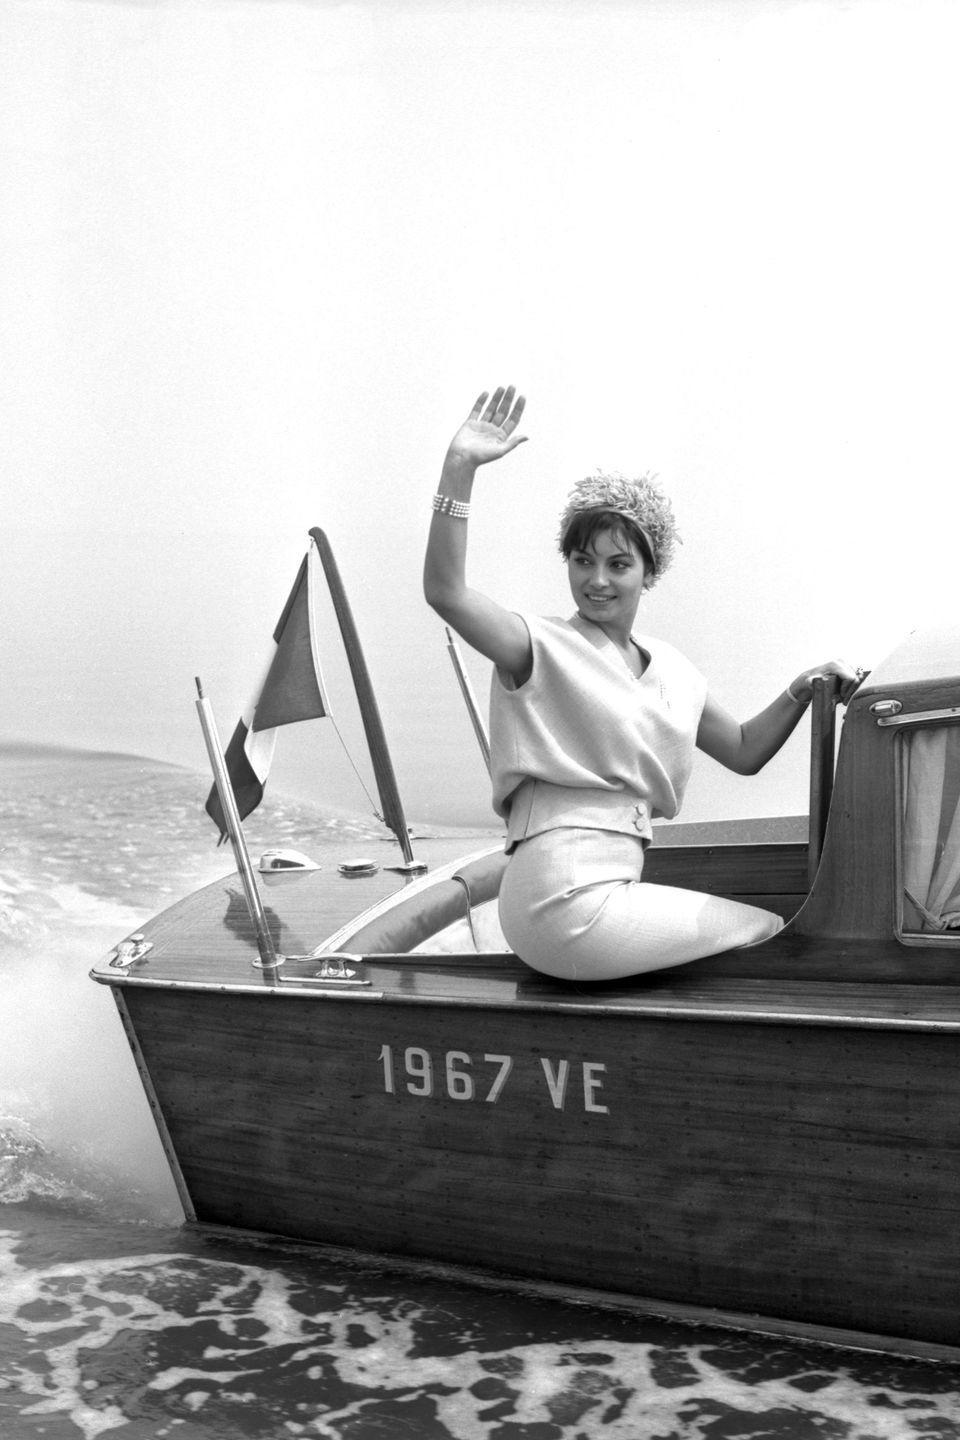 <p>Italian film star Rosanna Schiaffino waves to her fans as she arrives at an event in 1960 via water taxi. The actress sits on the stern of the vessel in a cream two-piece set and floral fascinator. </p>